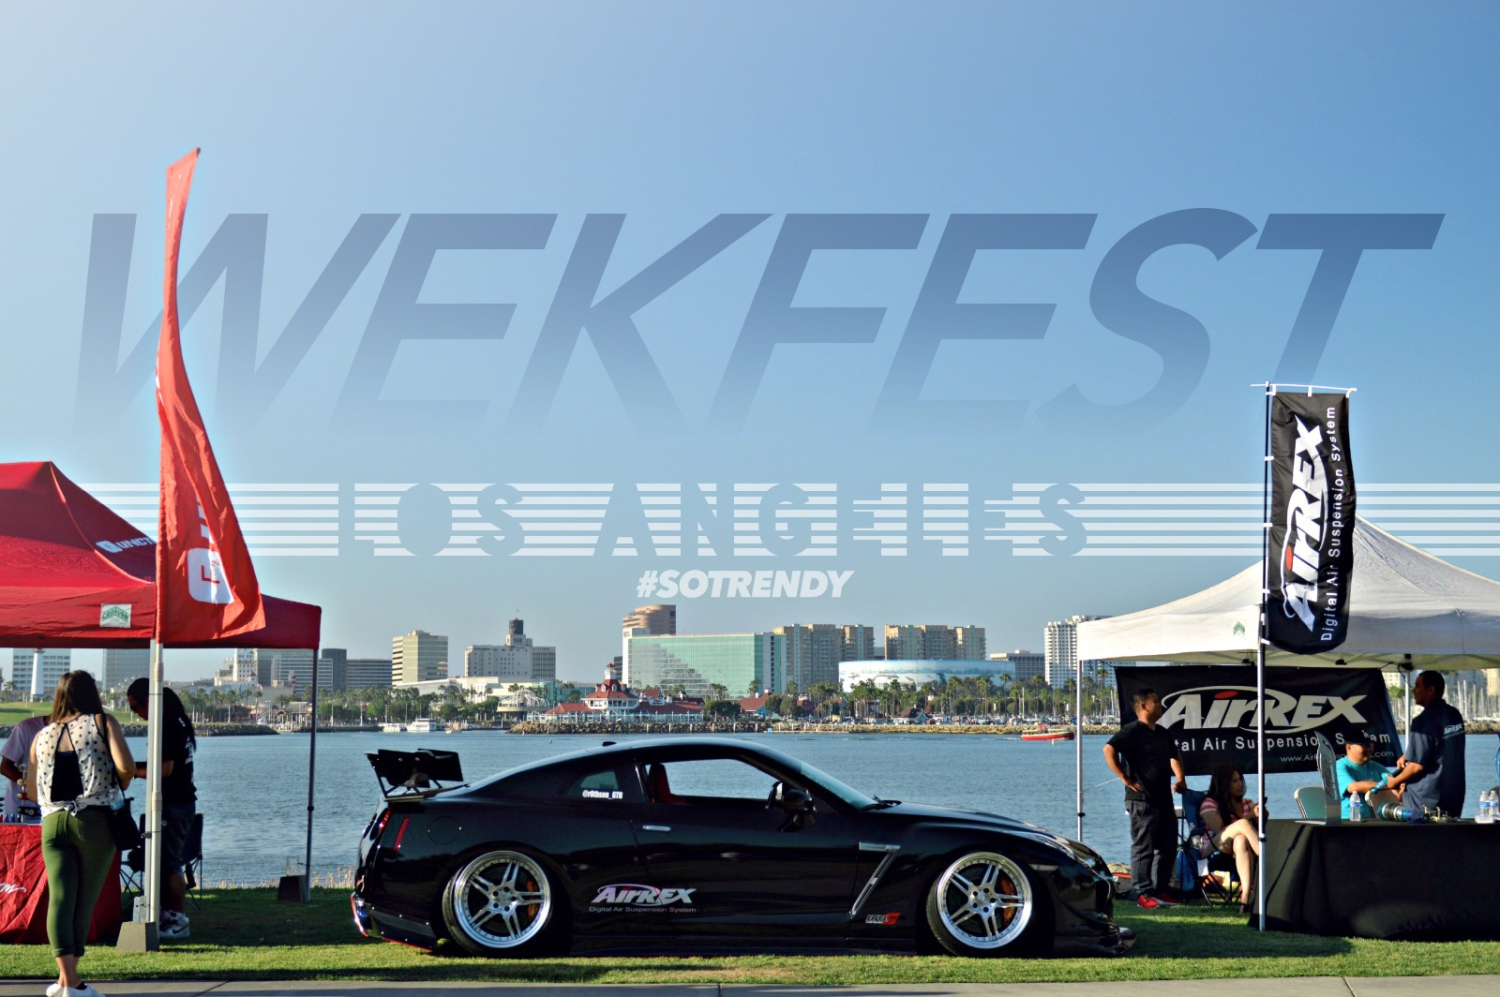 Wekfest Cover